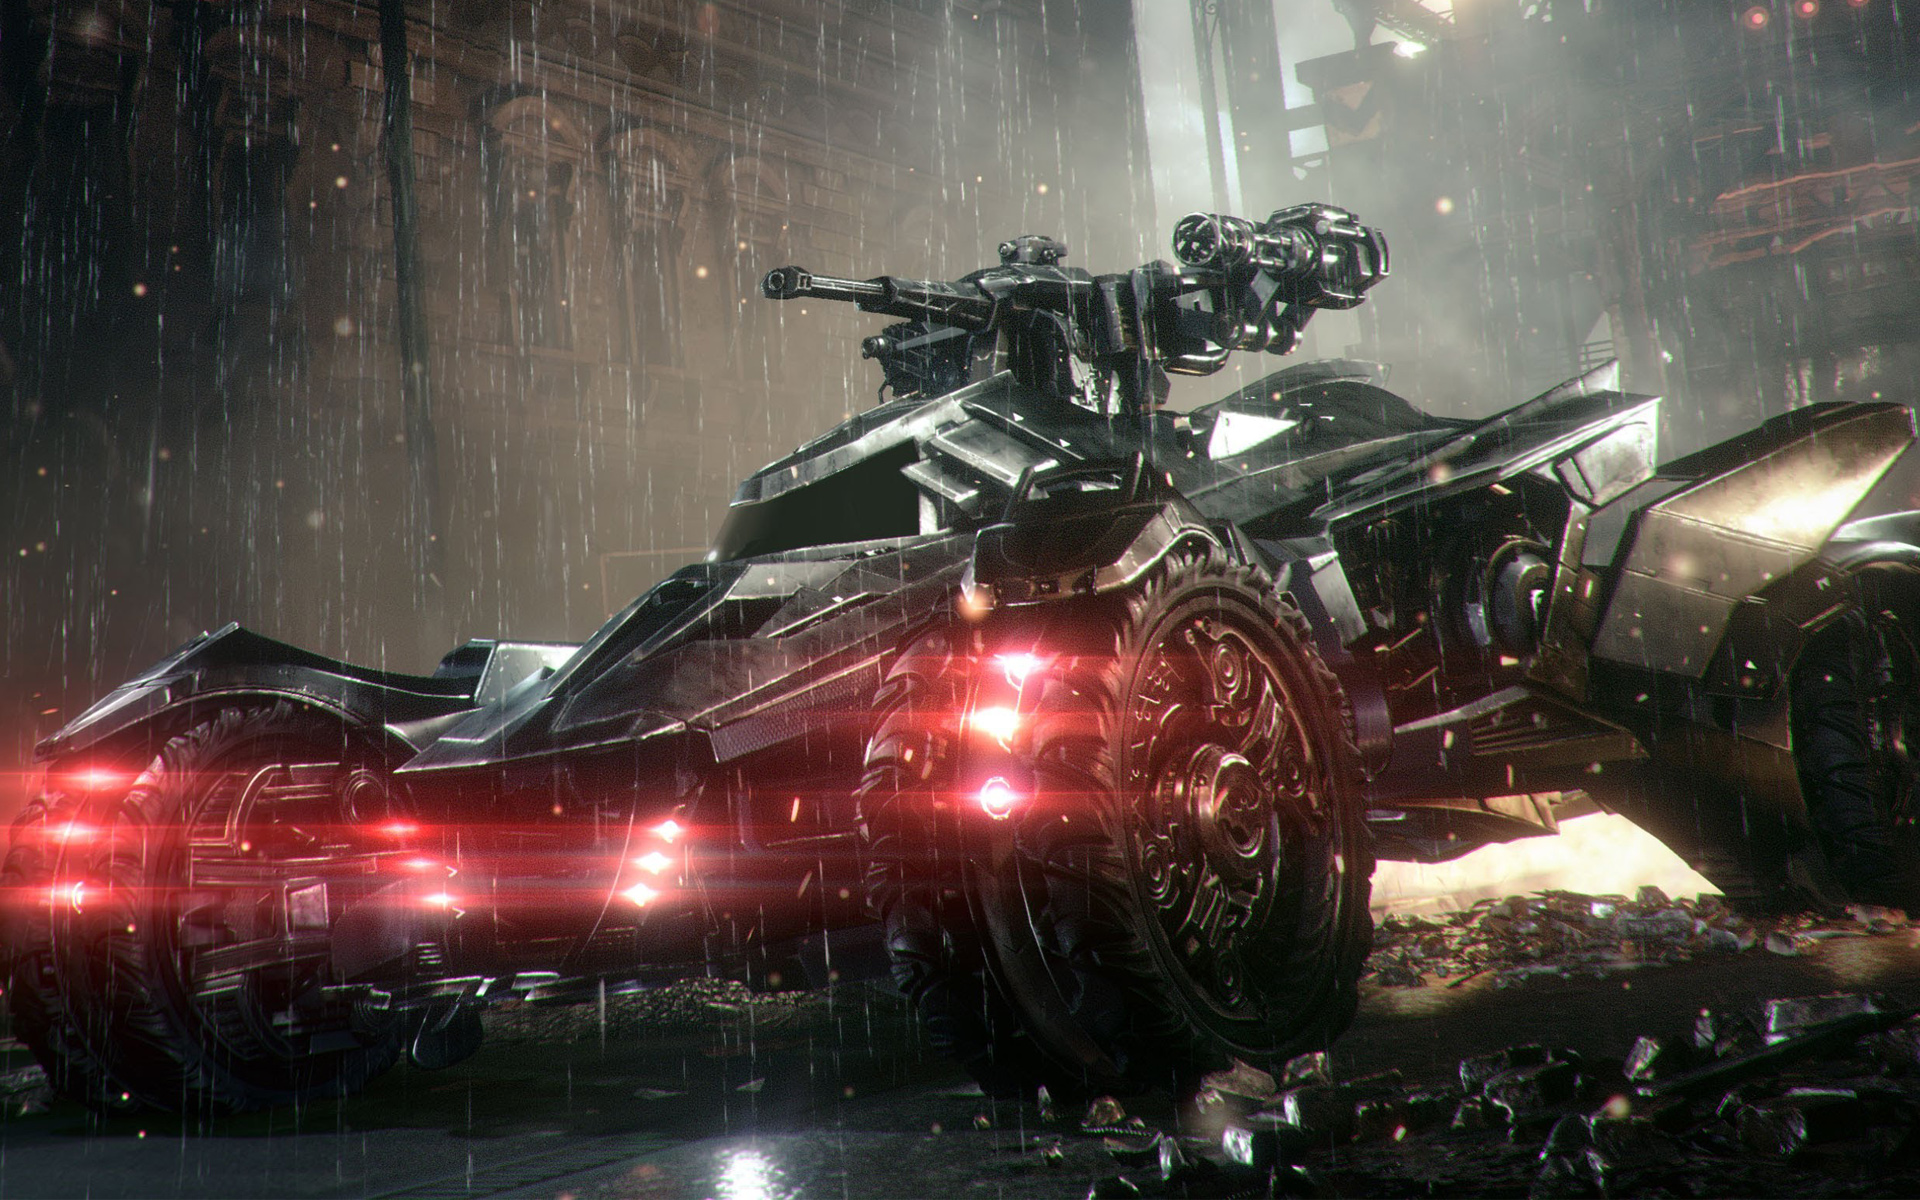 Batmobile in Arkham Knight 1268.96 Kb